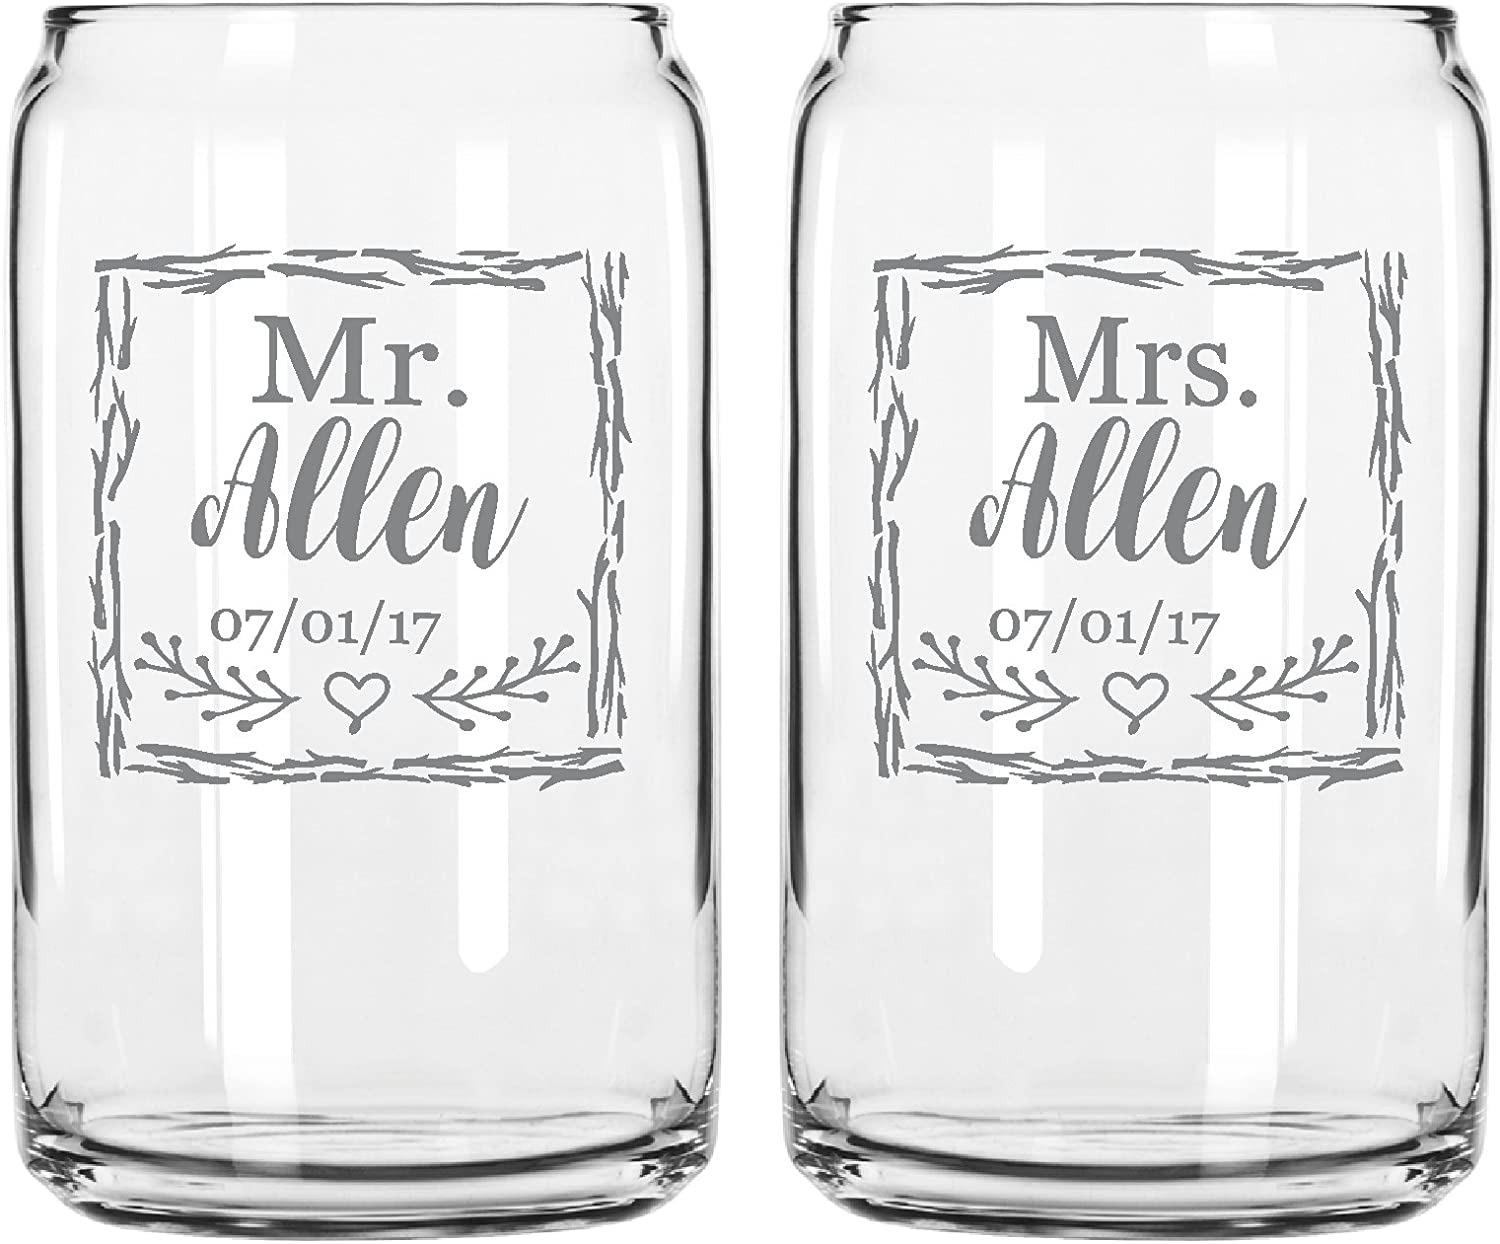 his-and-hers-gifts-beer-glasses